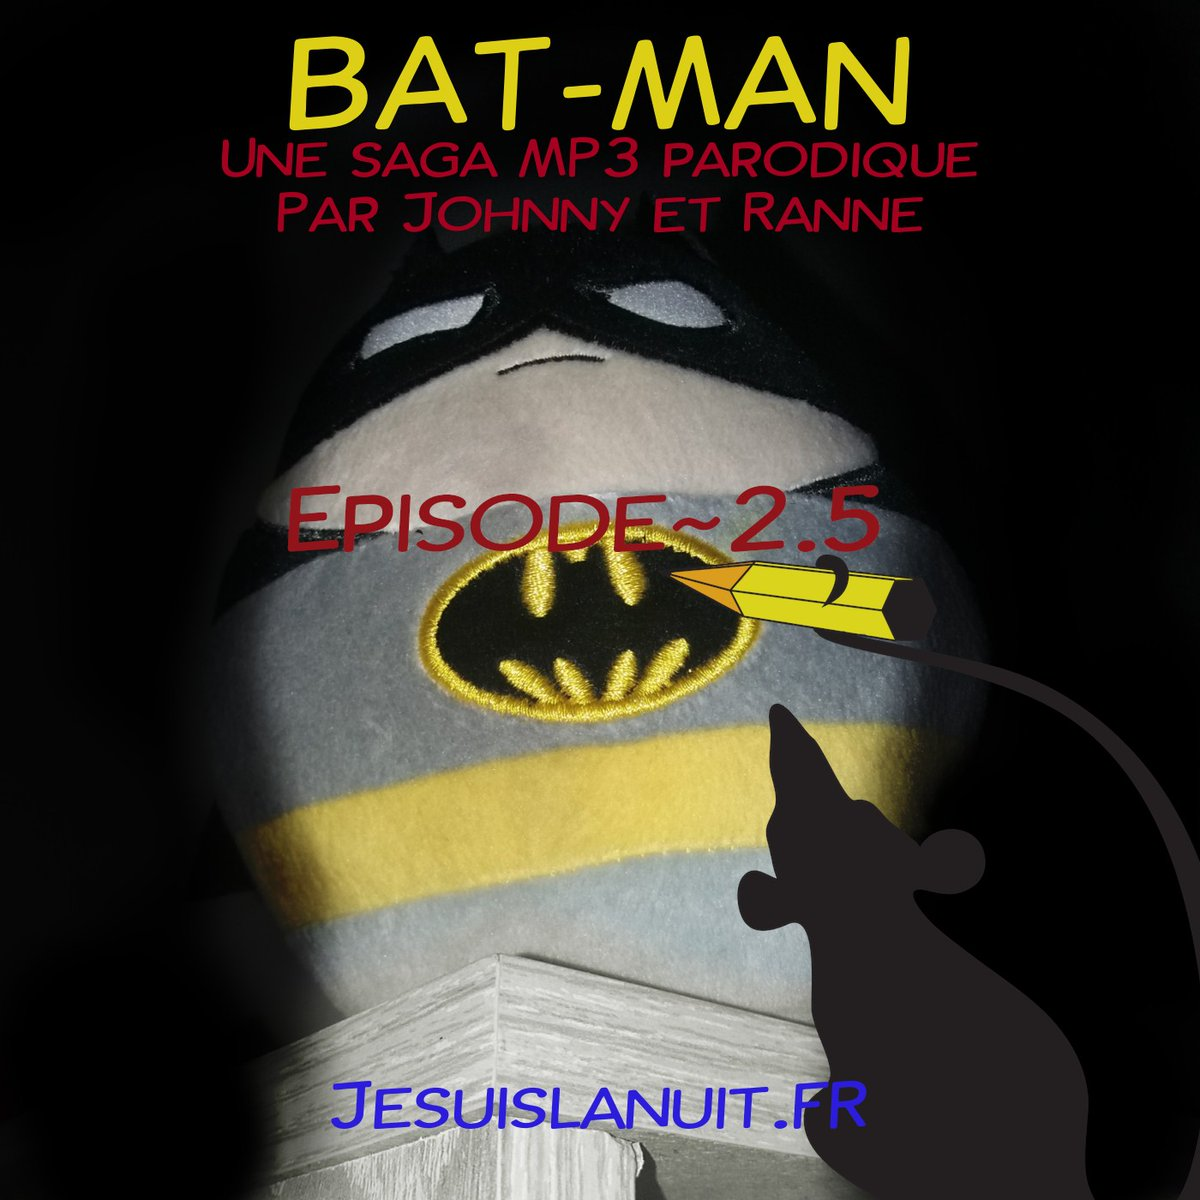 Un (ancien) nouvel épisode trépidant de [@BatmanEtRobine] Episode 2.5 - Les Bat-catacombes #batMan  https://t.co/l3x27ohVS3 via @PodcastAddict https://t.co/9QMJGnCOns